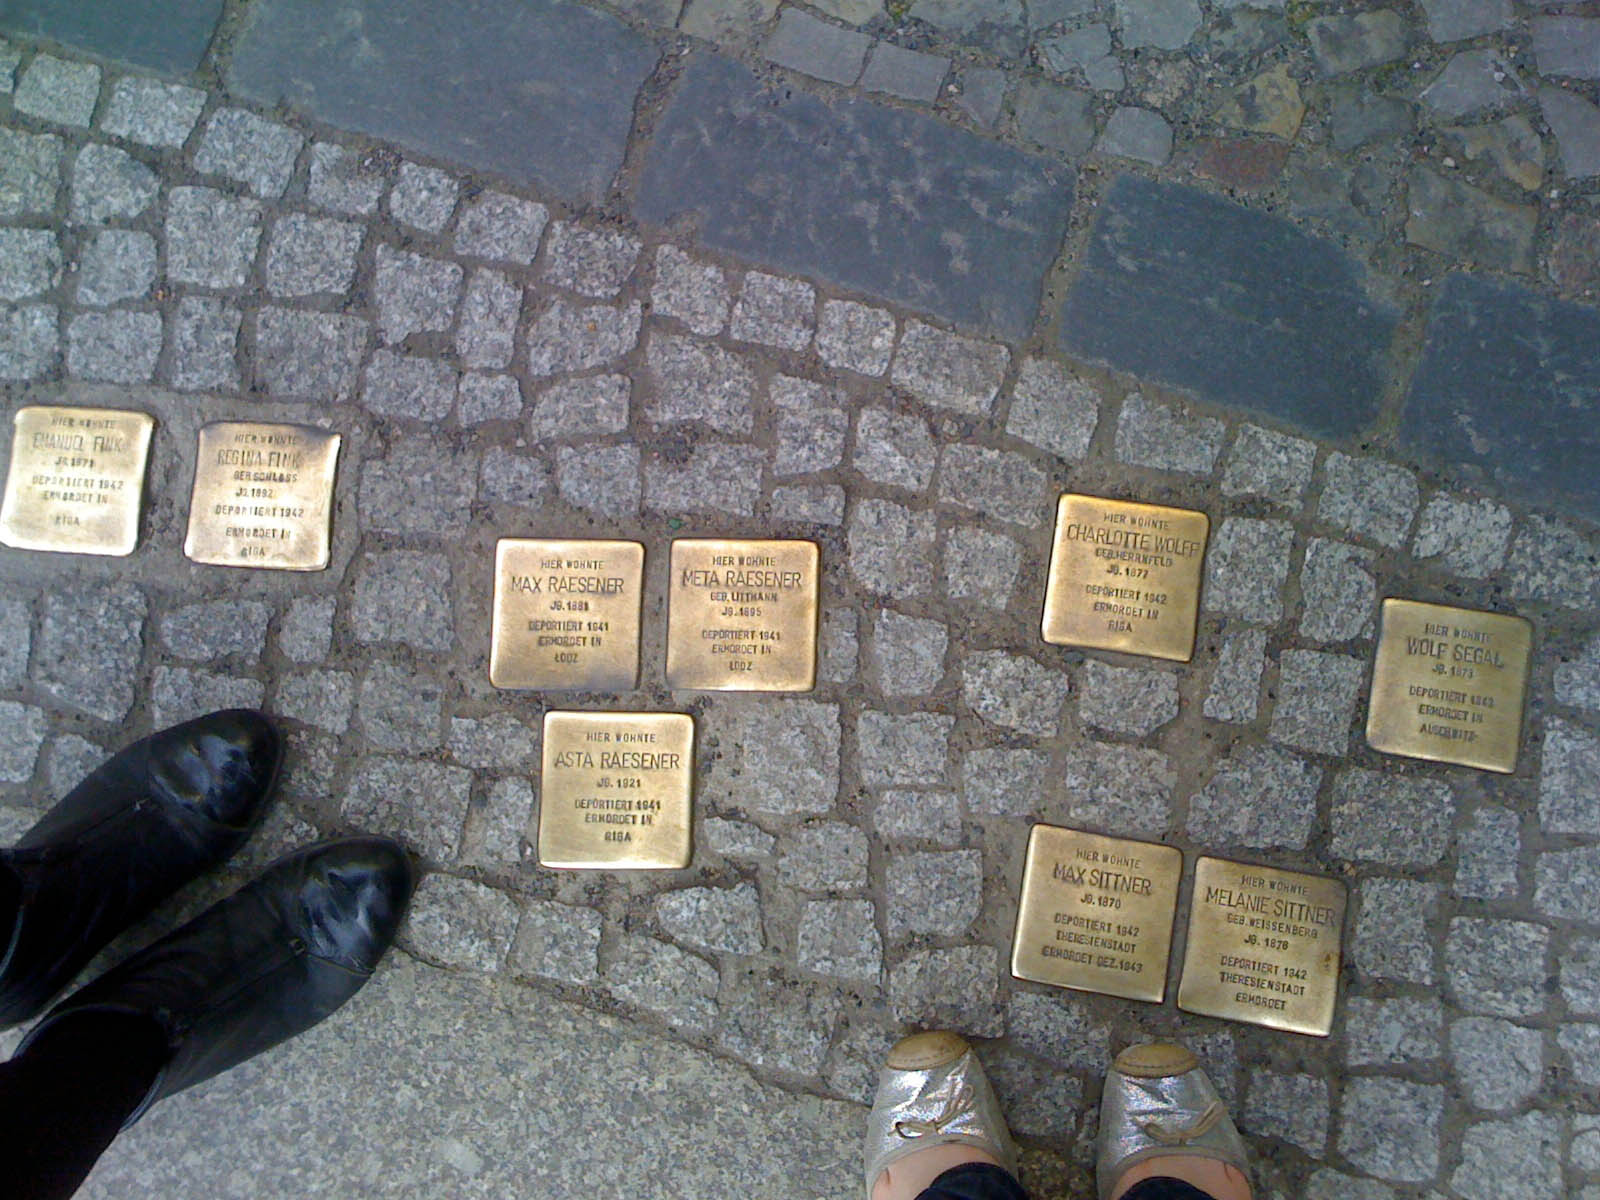 The Holocaust Memorial That Reminded Me Of The Impact Of Each Life